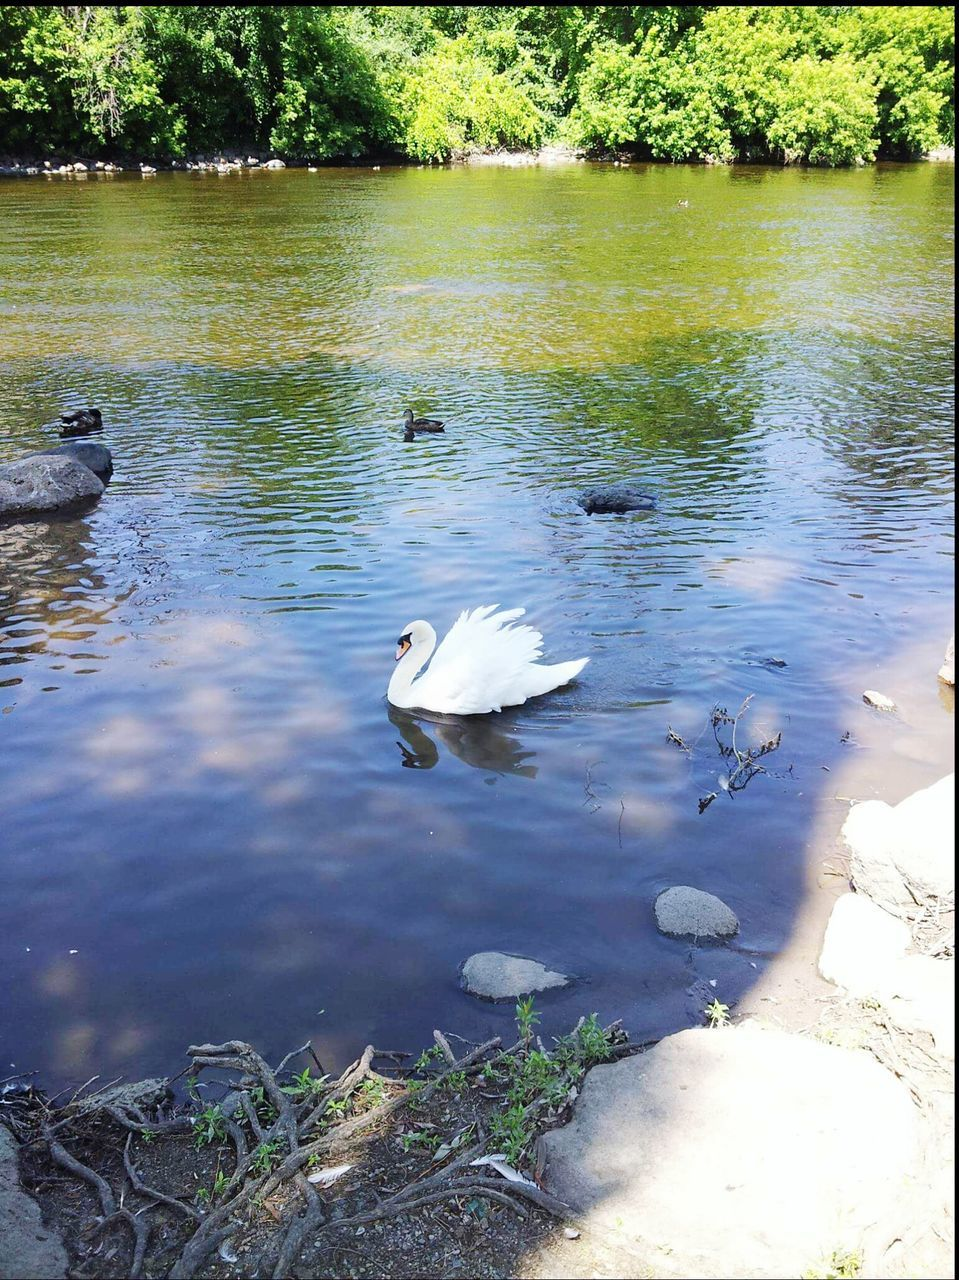 lake, animal themes, water, animals in the wild, nature, bird, tree, day, swan, white color, no people, animal wildlife, reflection, outdoors, swimming, high angle view, floating on water, water bird, growth, beauty in nature, tranquility